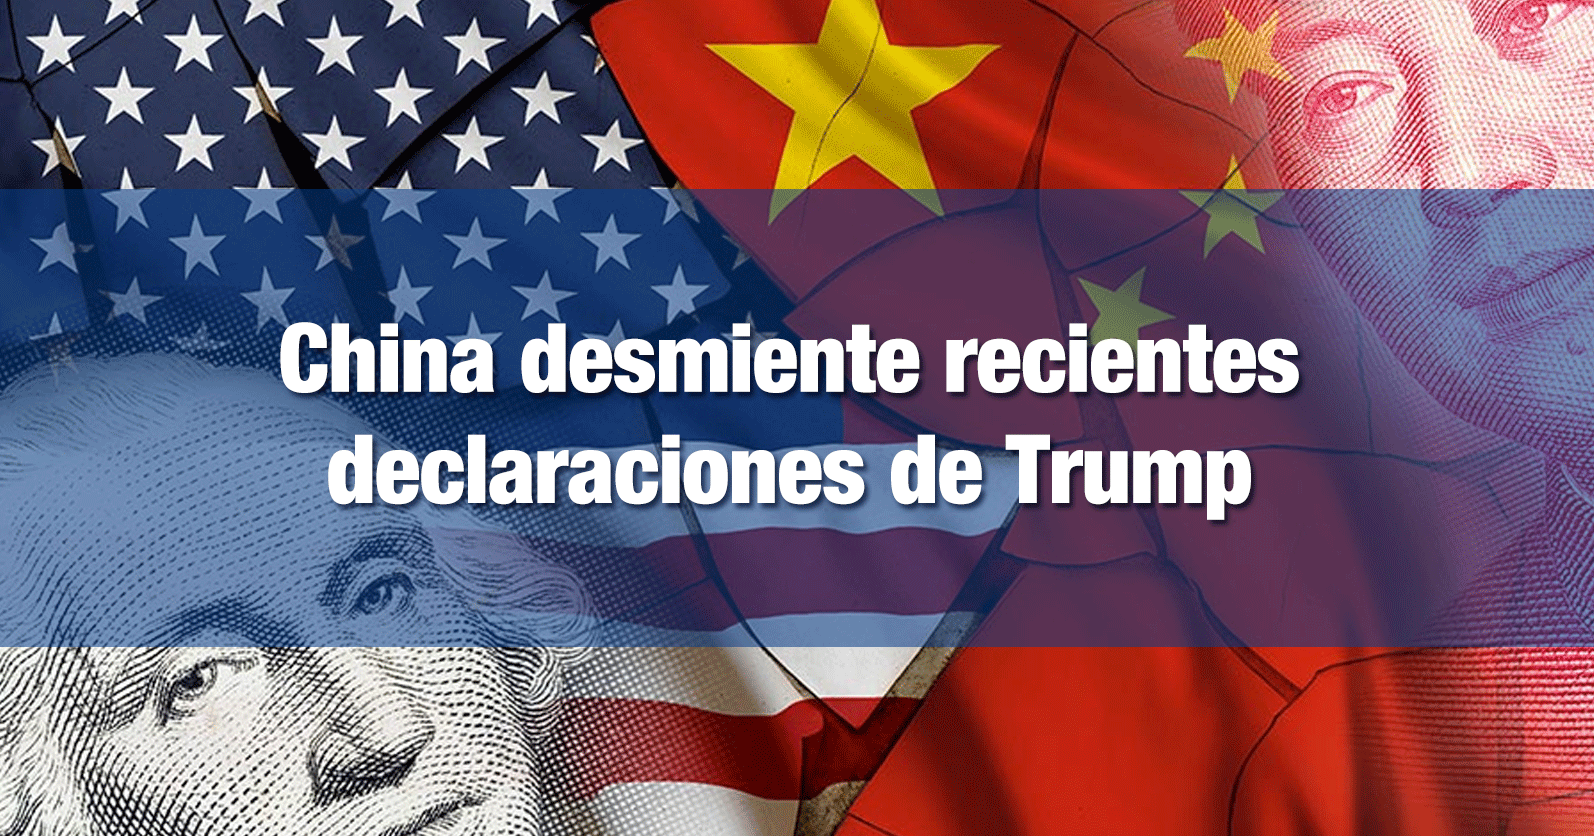 China desmiente recientes declaraciones de Trump